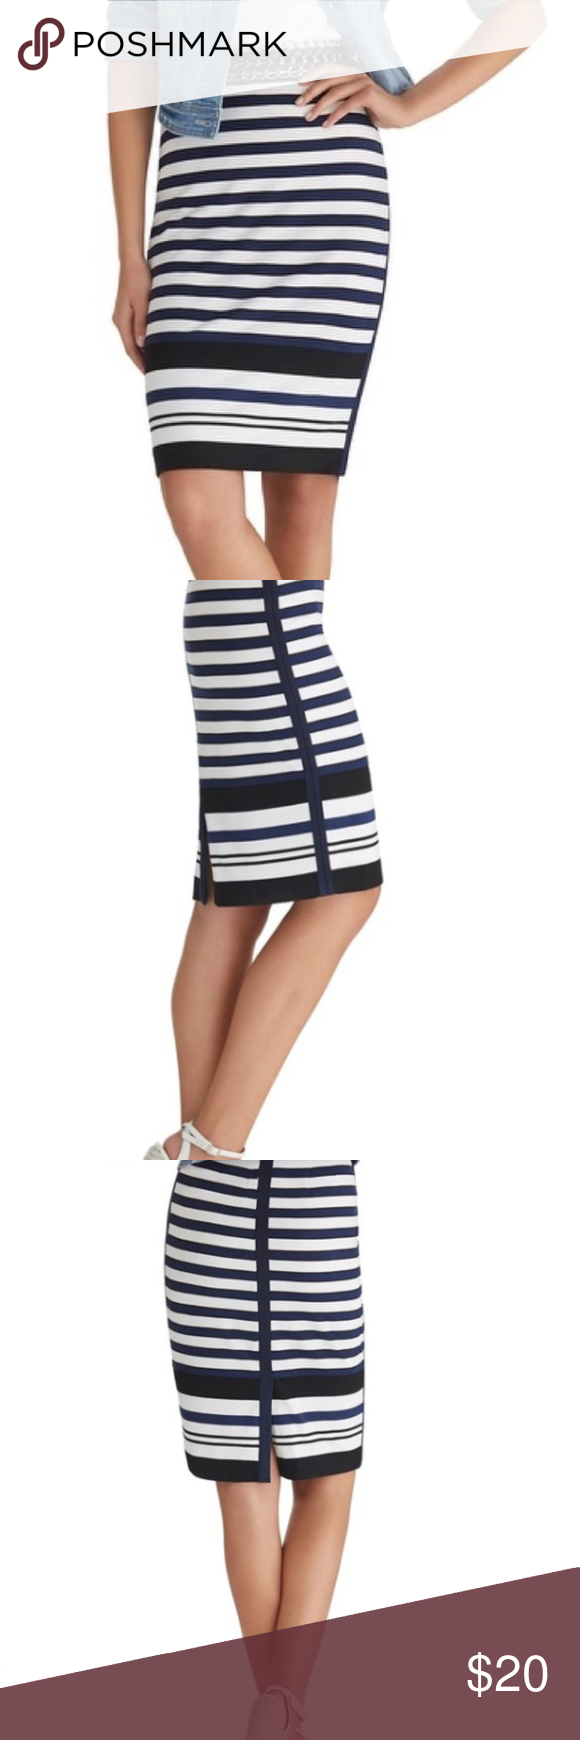 1a4324fb6b WHBM Stripe Knit Pencil Skirt Size 4 WHBM Stripe Knit Pencil Skirt Size 4  Wait 15